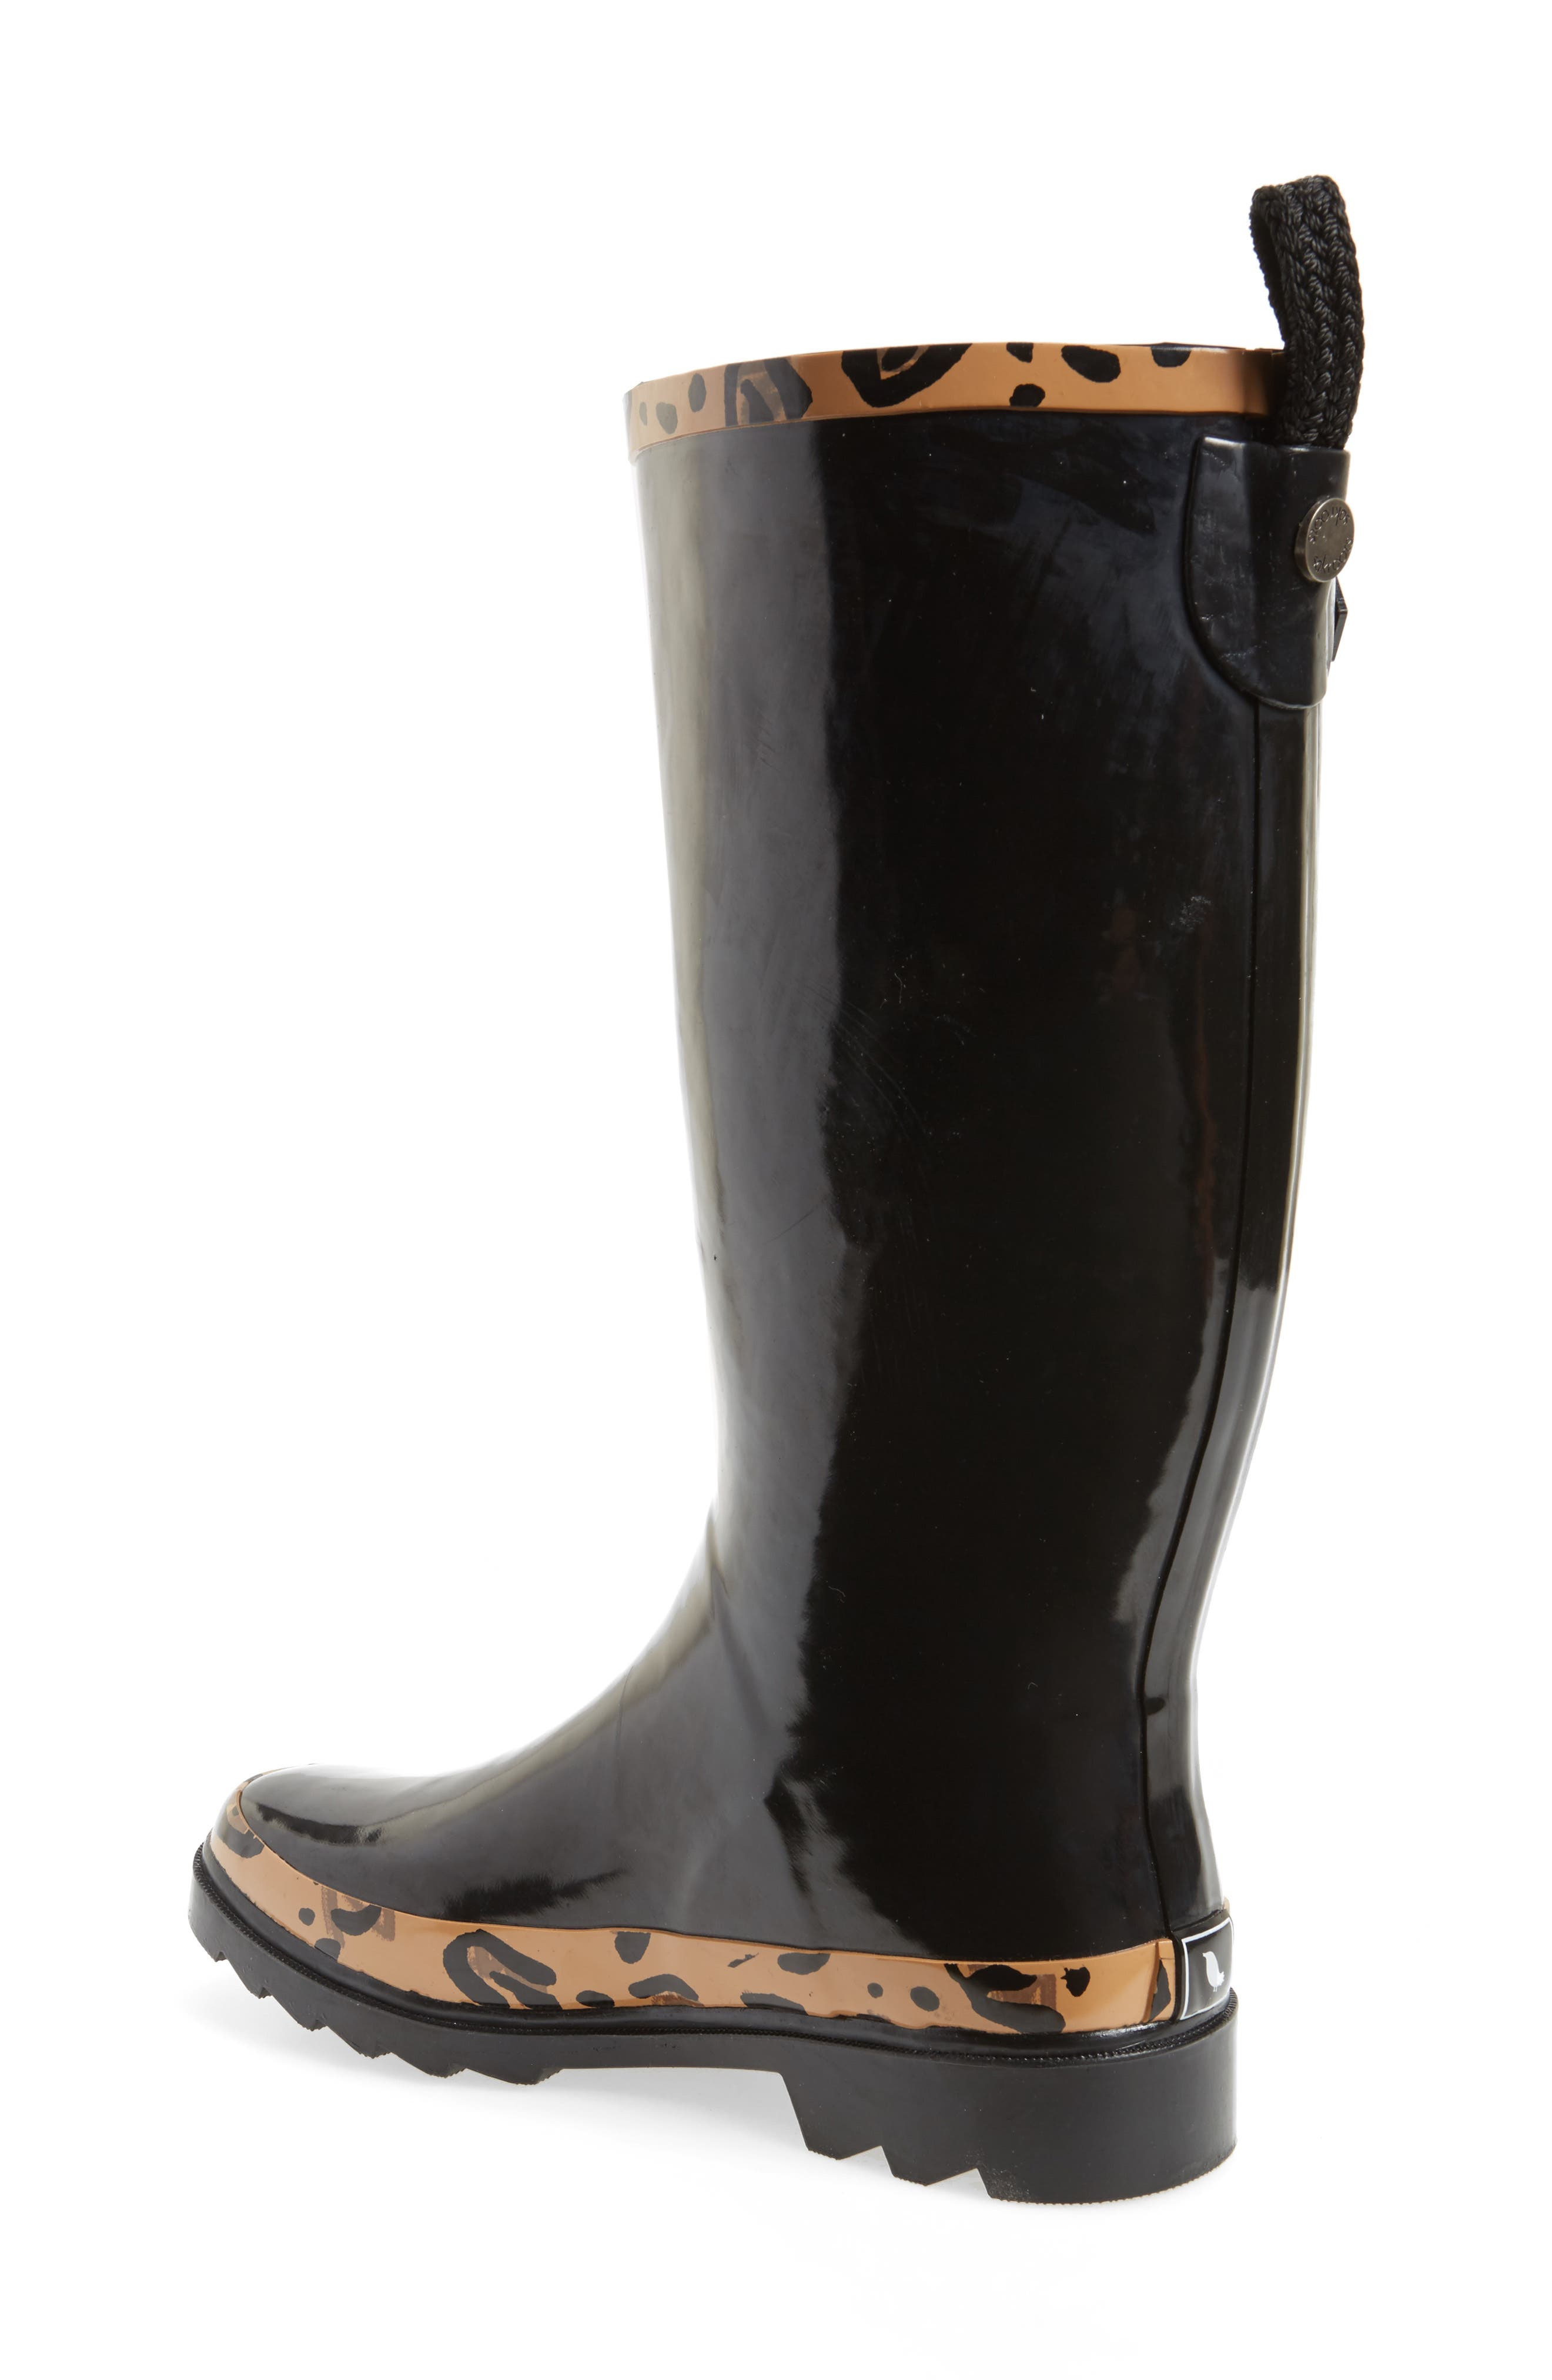 Rhythm Waterproof Rain Boot,                             Alternate thumbnail 2, color,                             BLACK LEOPARD PRINT